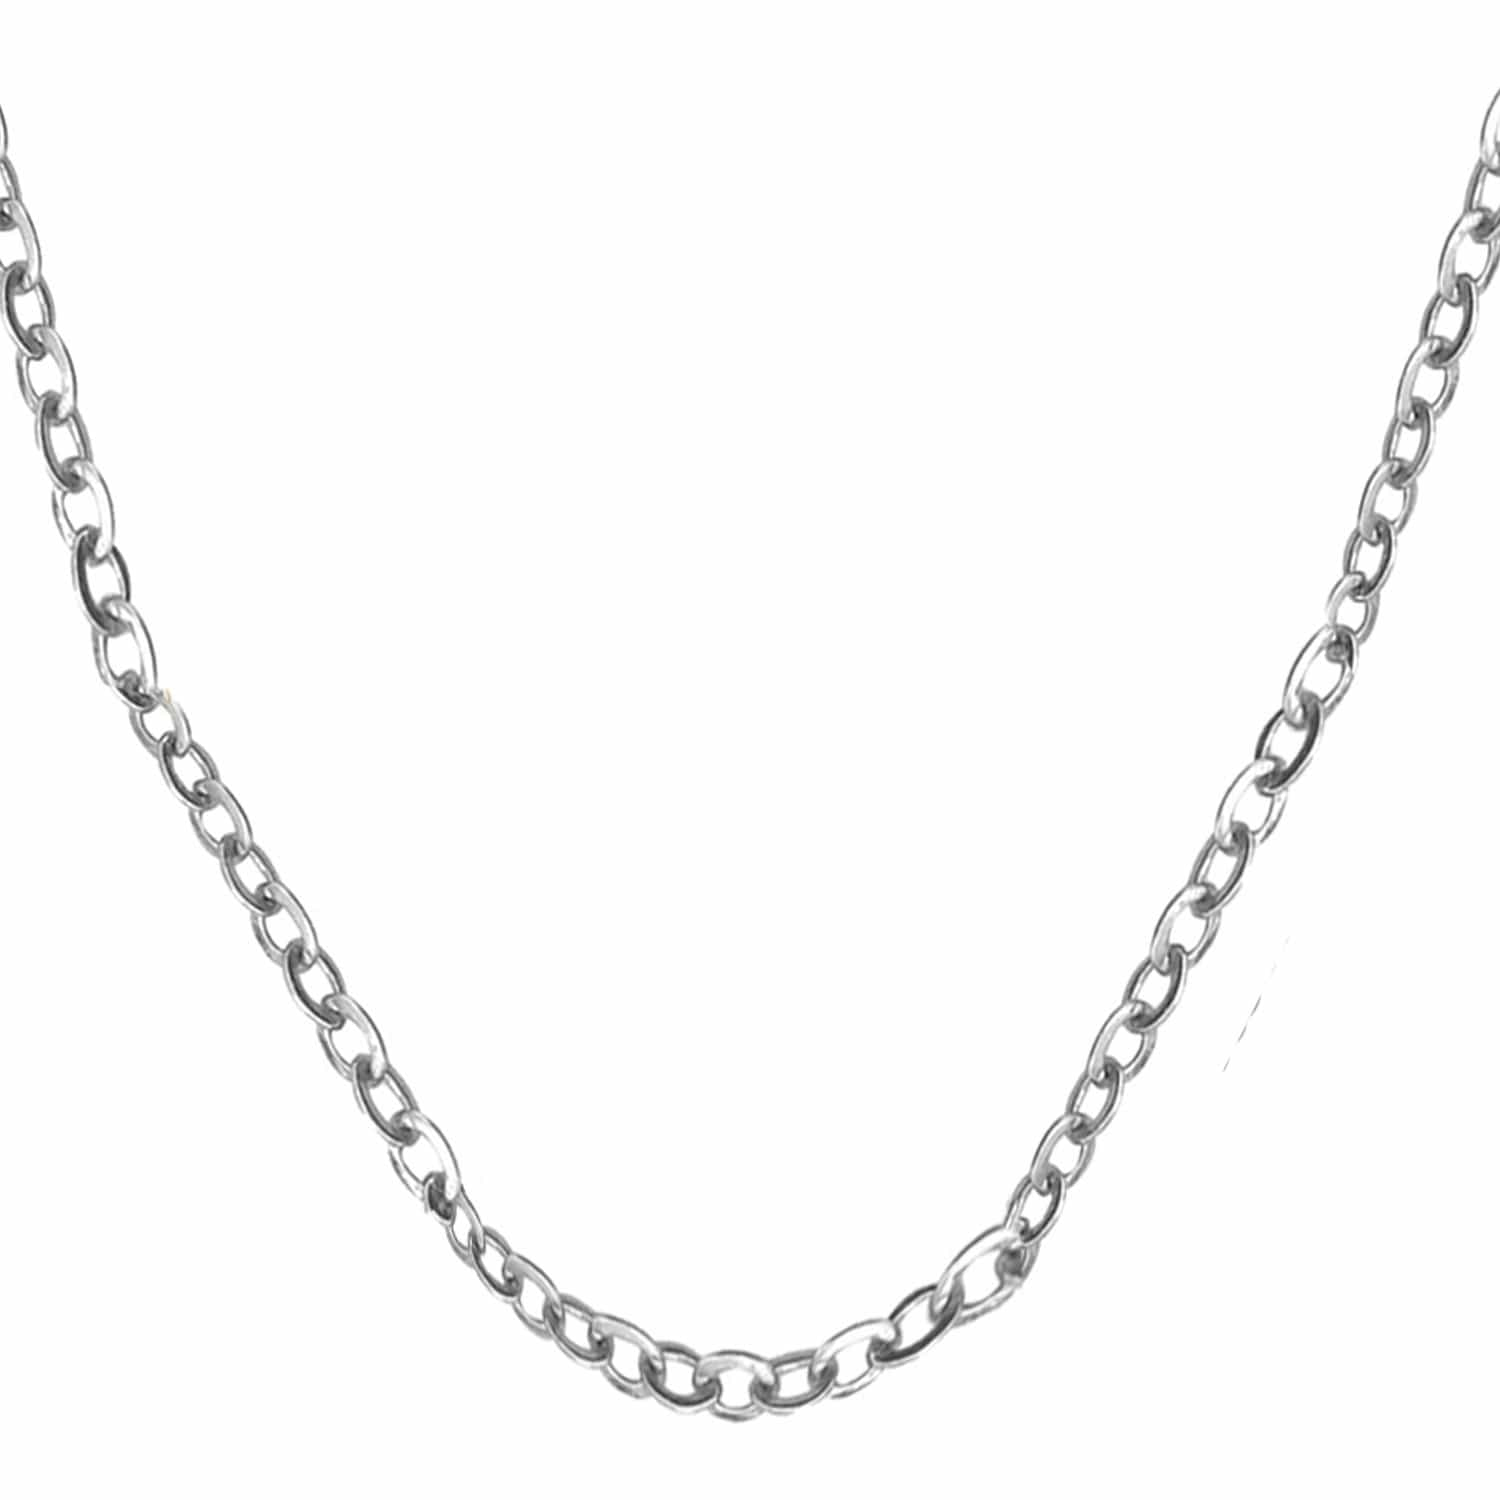 Silver Stainless Steel Polished 2mm Round Cable Chain Chains 16 Inch